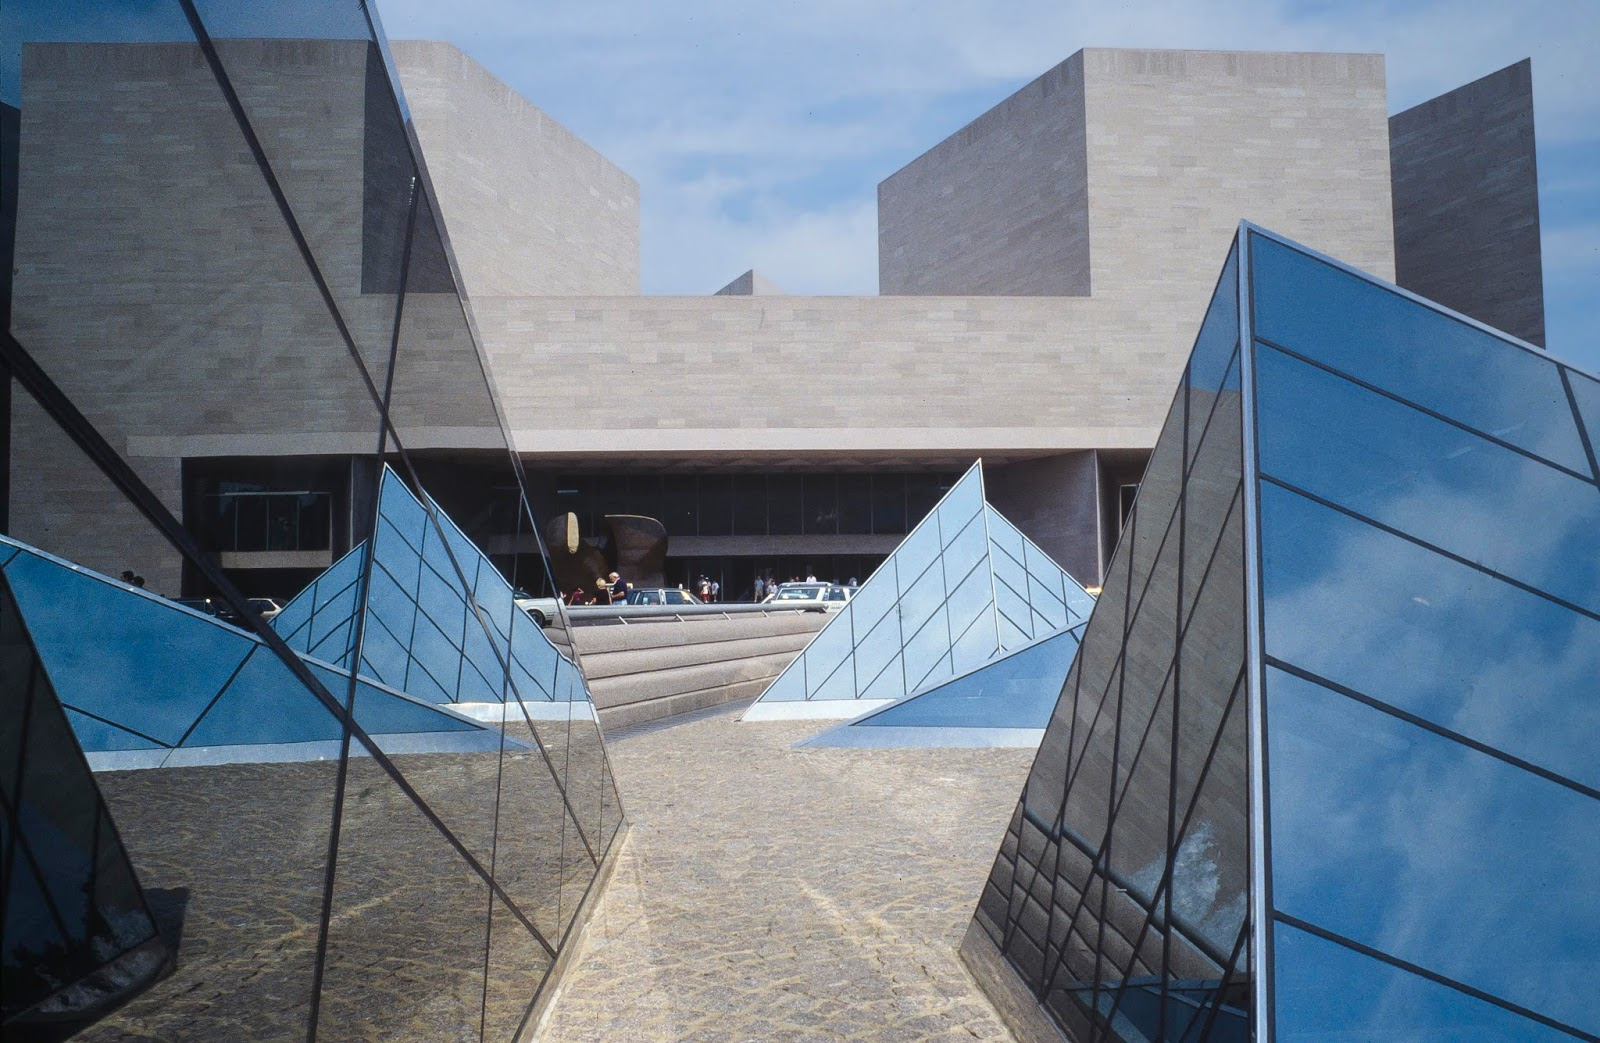 These Are The 25 Best Museums In The World - The National Gallery of Art